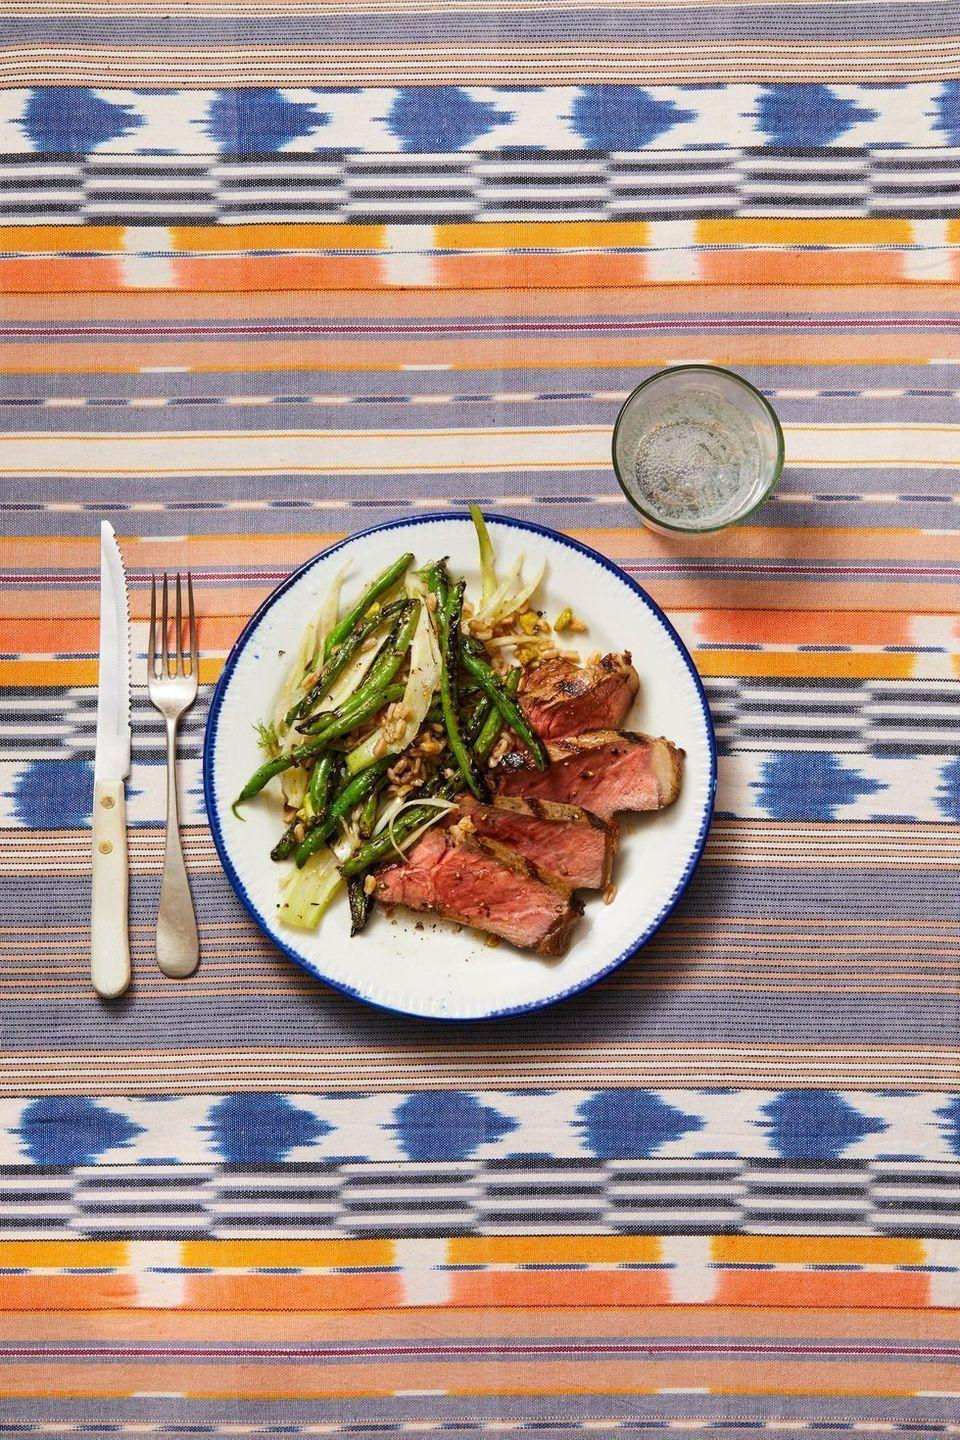 "<p>Fire up the grill to char green beans and steak for the ultimate family dinner.</p><p><em><a href=""https://www.goodhousekeeping.com/food-recipes/a28611907/steak-with-grilled-green-beans-fennel-and-farro-recipe/"" rel=""nofollow noopener"" target=""_blank"" data-ylk=""slk:Get the recipe for Steak with Grilled Green Beans, Fennel & Farro »"" class=""link rapid-noclick-resp"">Get the recipe for Steak with Grilled Green Beans, Fennel & Farro »</a></em></p>"